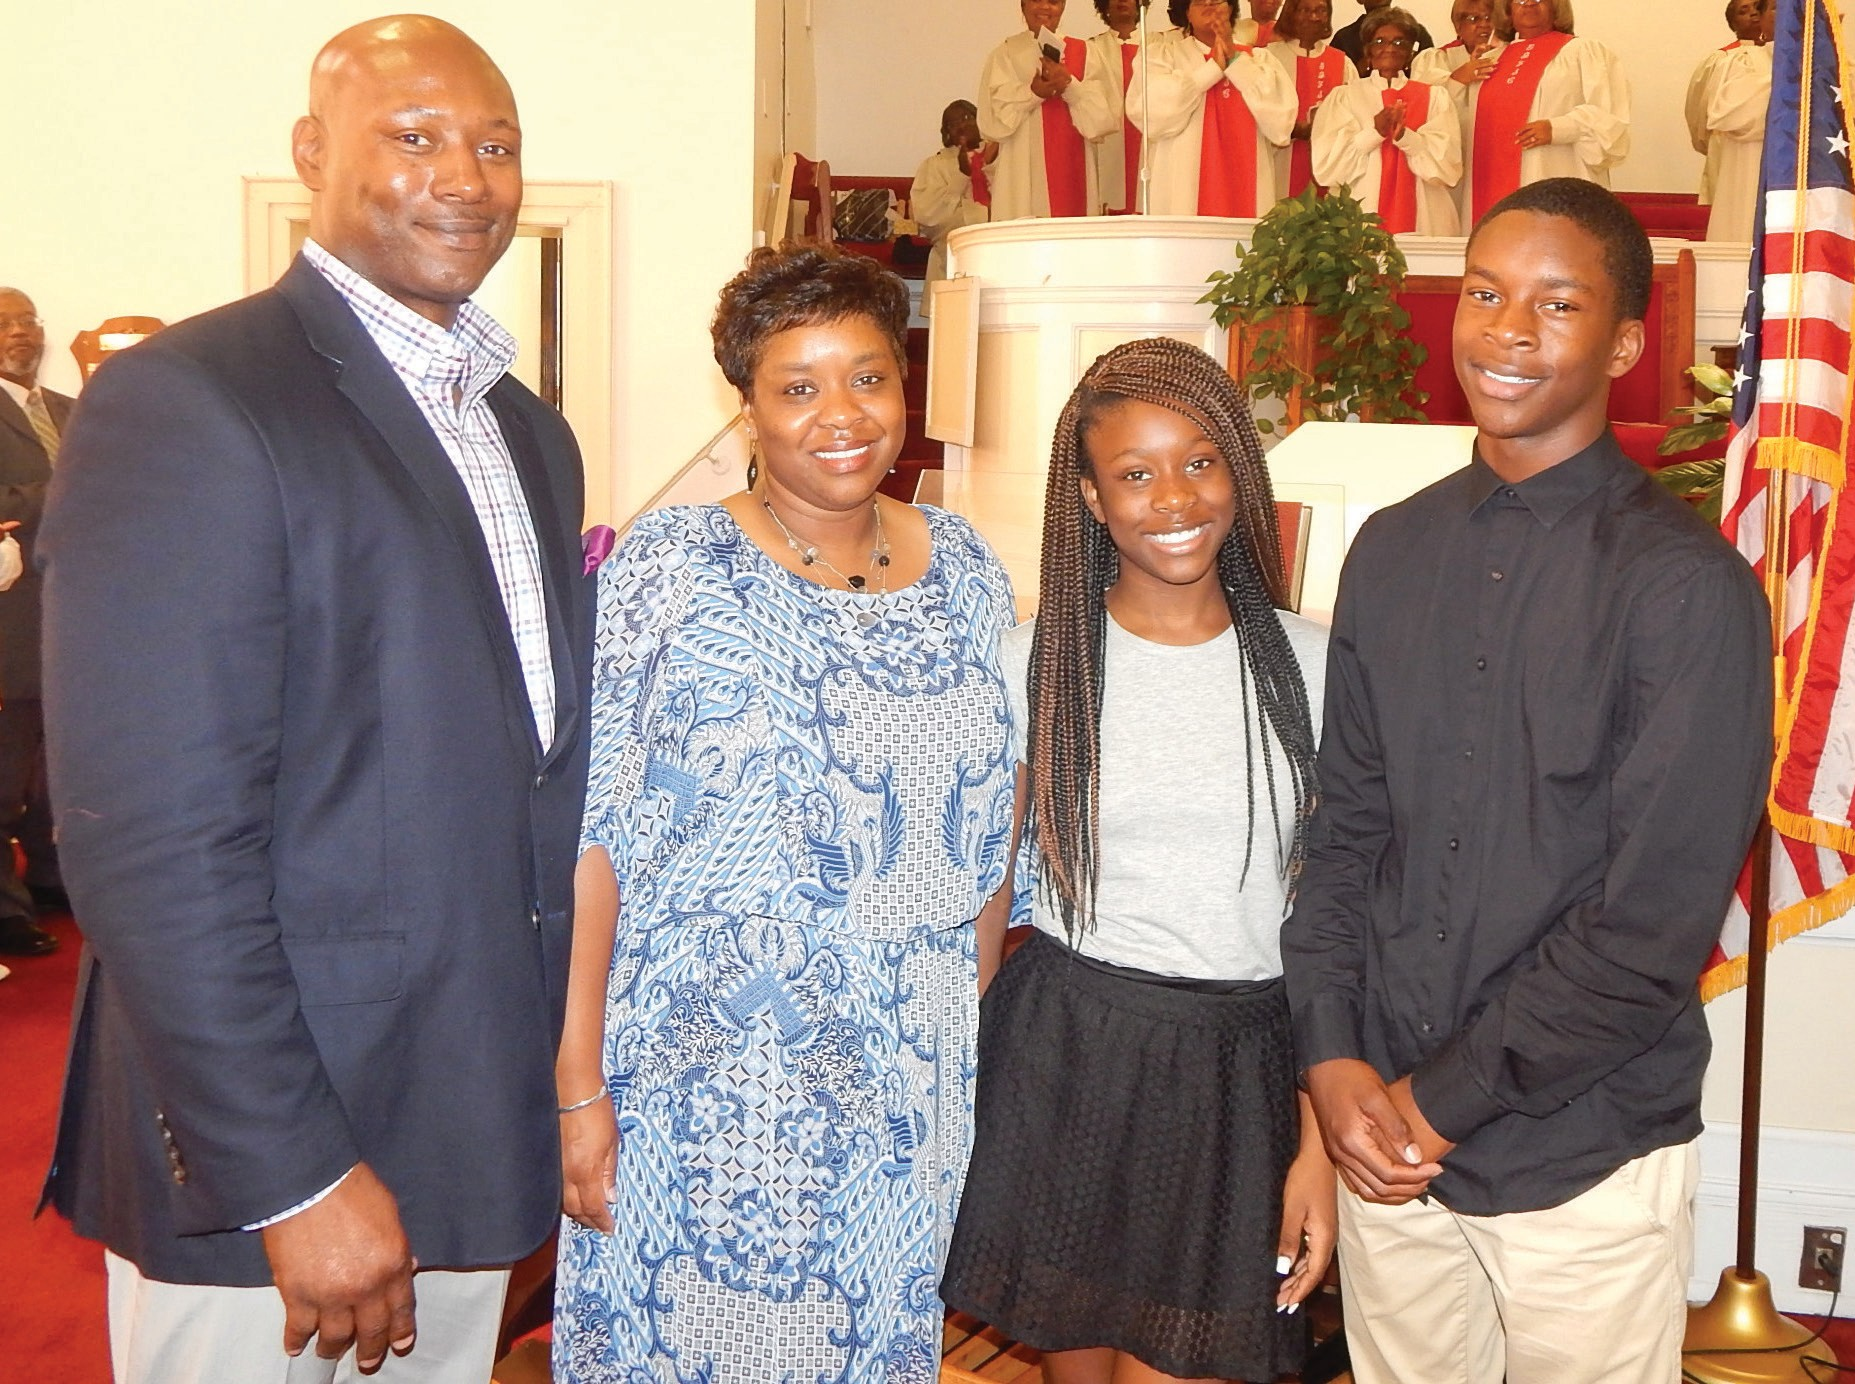 Nathaniel A. Moon, III (far right) pictured with his family